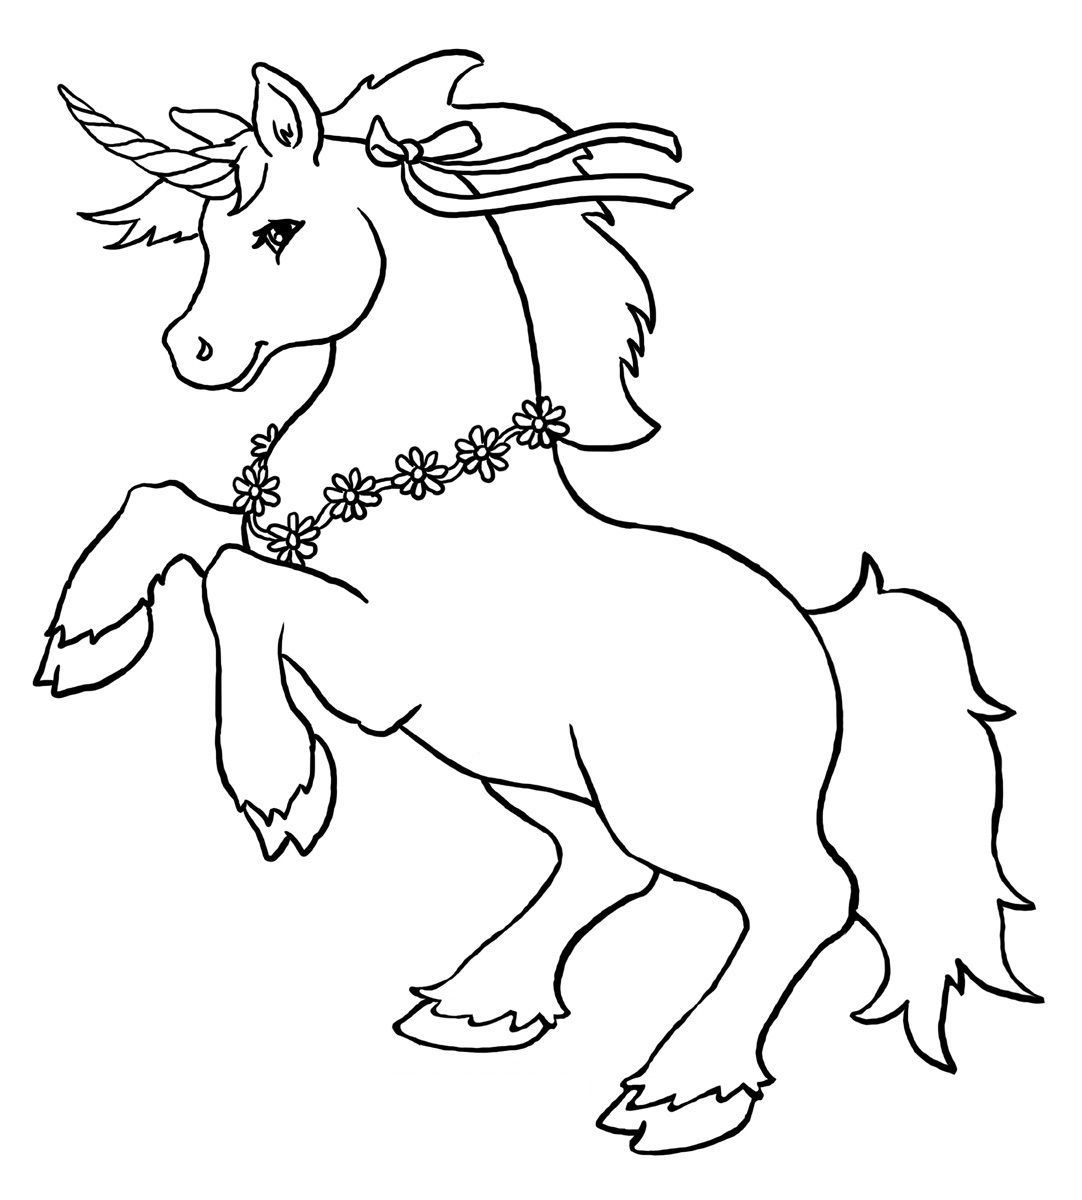 Free Printable Unicorn Coloring Pages For Kids | Unicornio, Mochilas ...